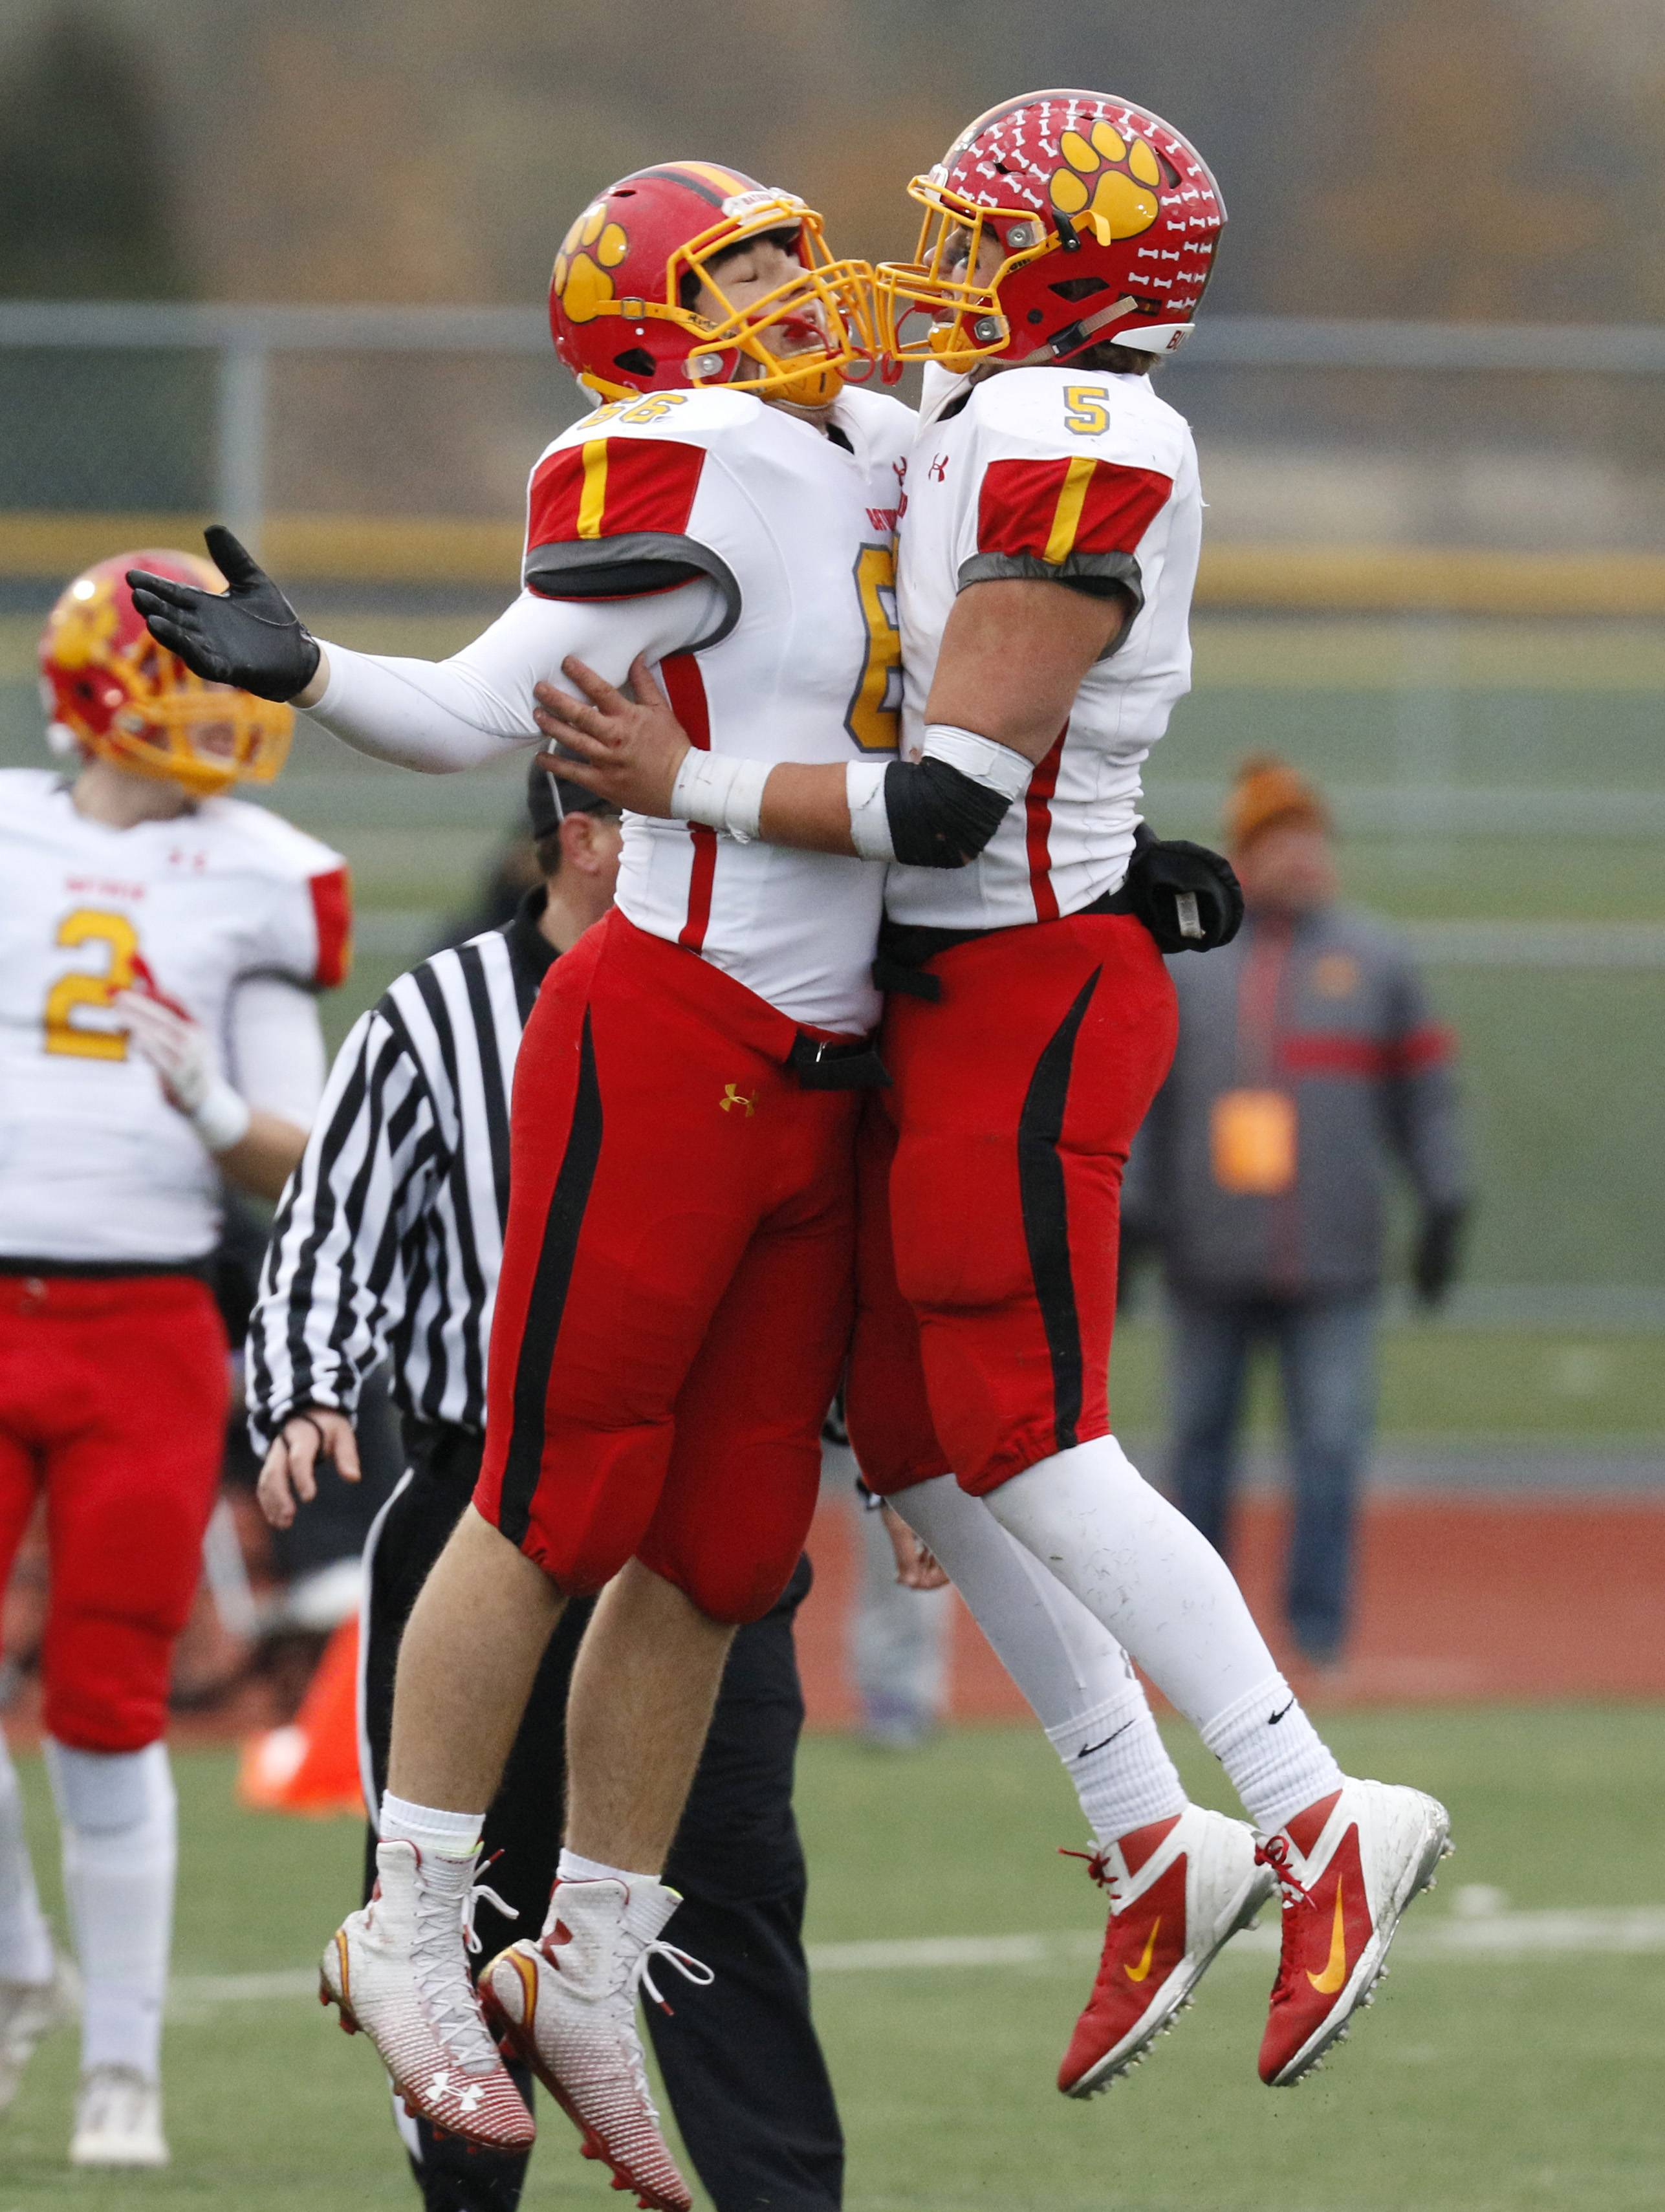 Batavia comes from behind to dump Lincoln-Way West